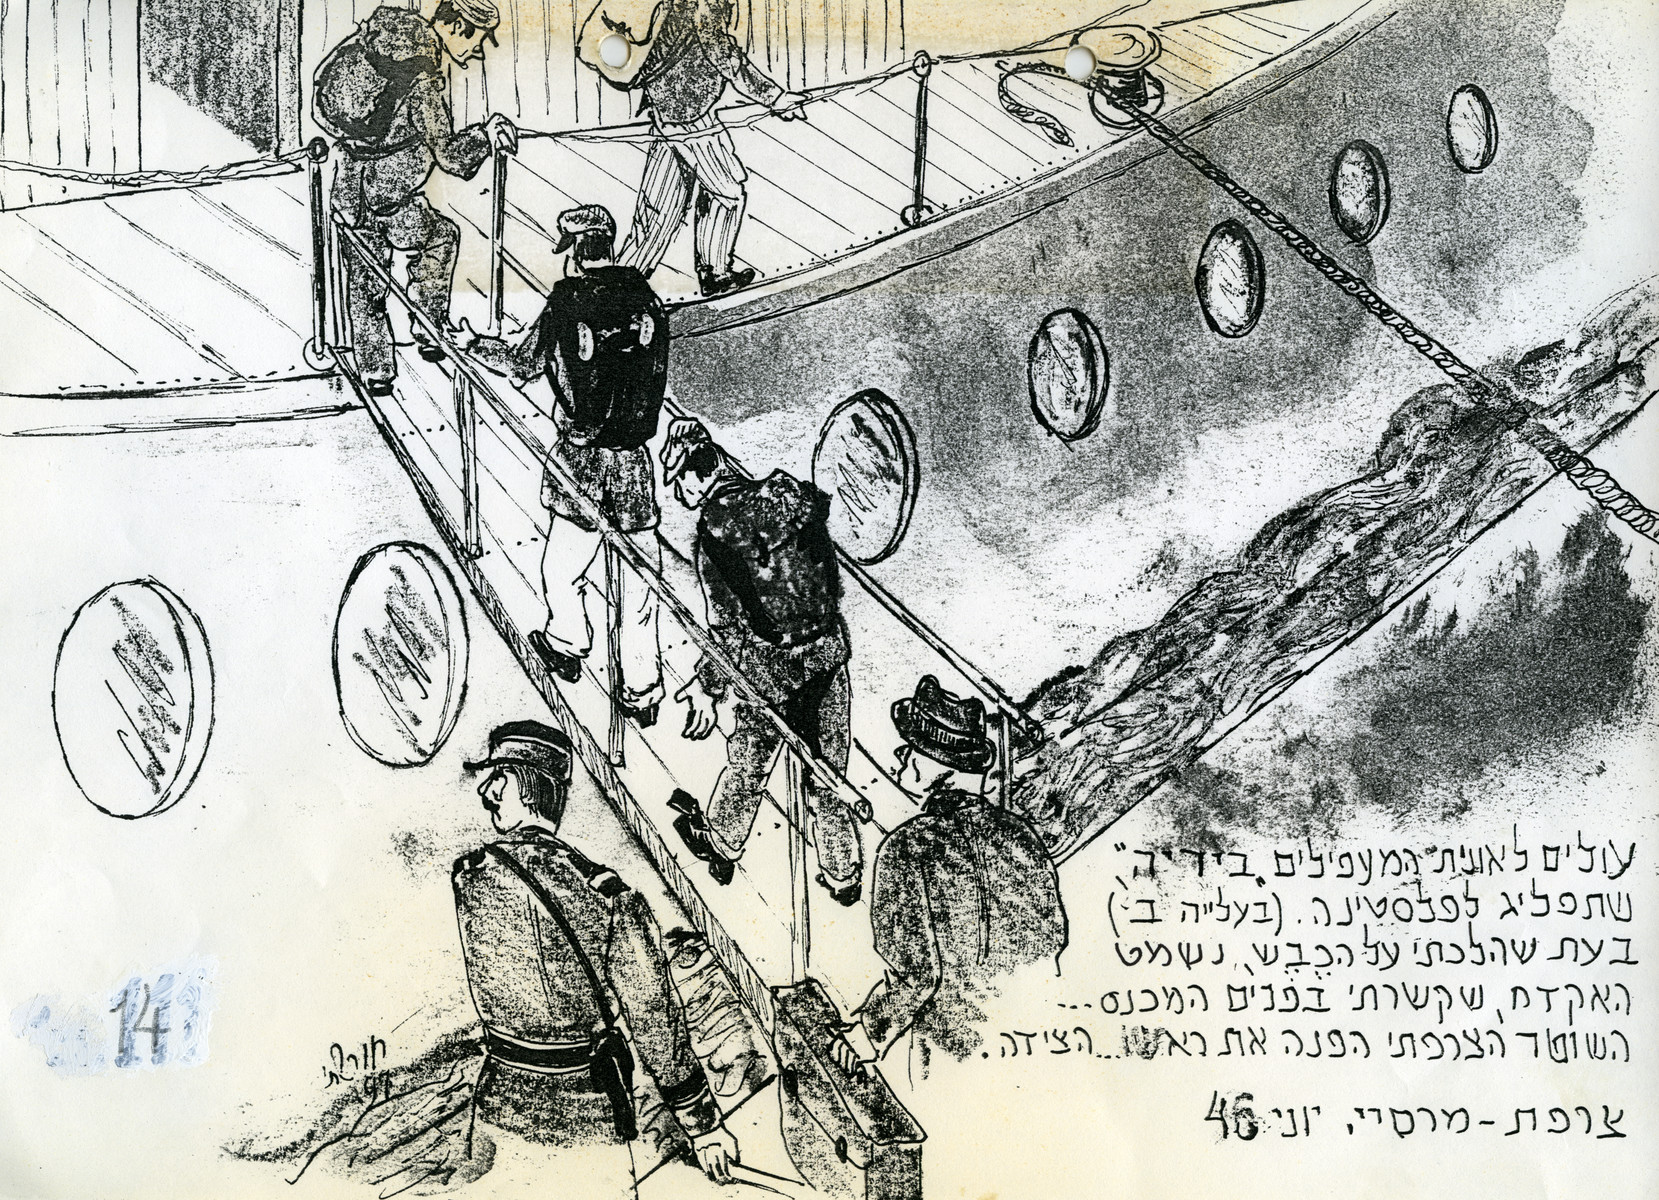 Page of a pictoral memoir drawn by the donor documenting his experiences after the Holocaust.  The drawing shows Jewish displaced persons boarding the ship Beriah in the port of Marseilles.